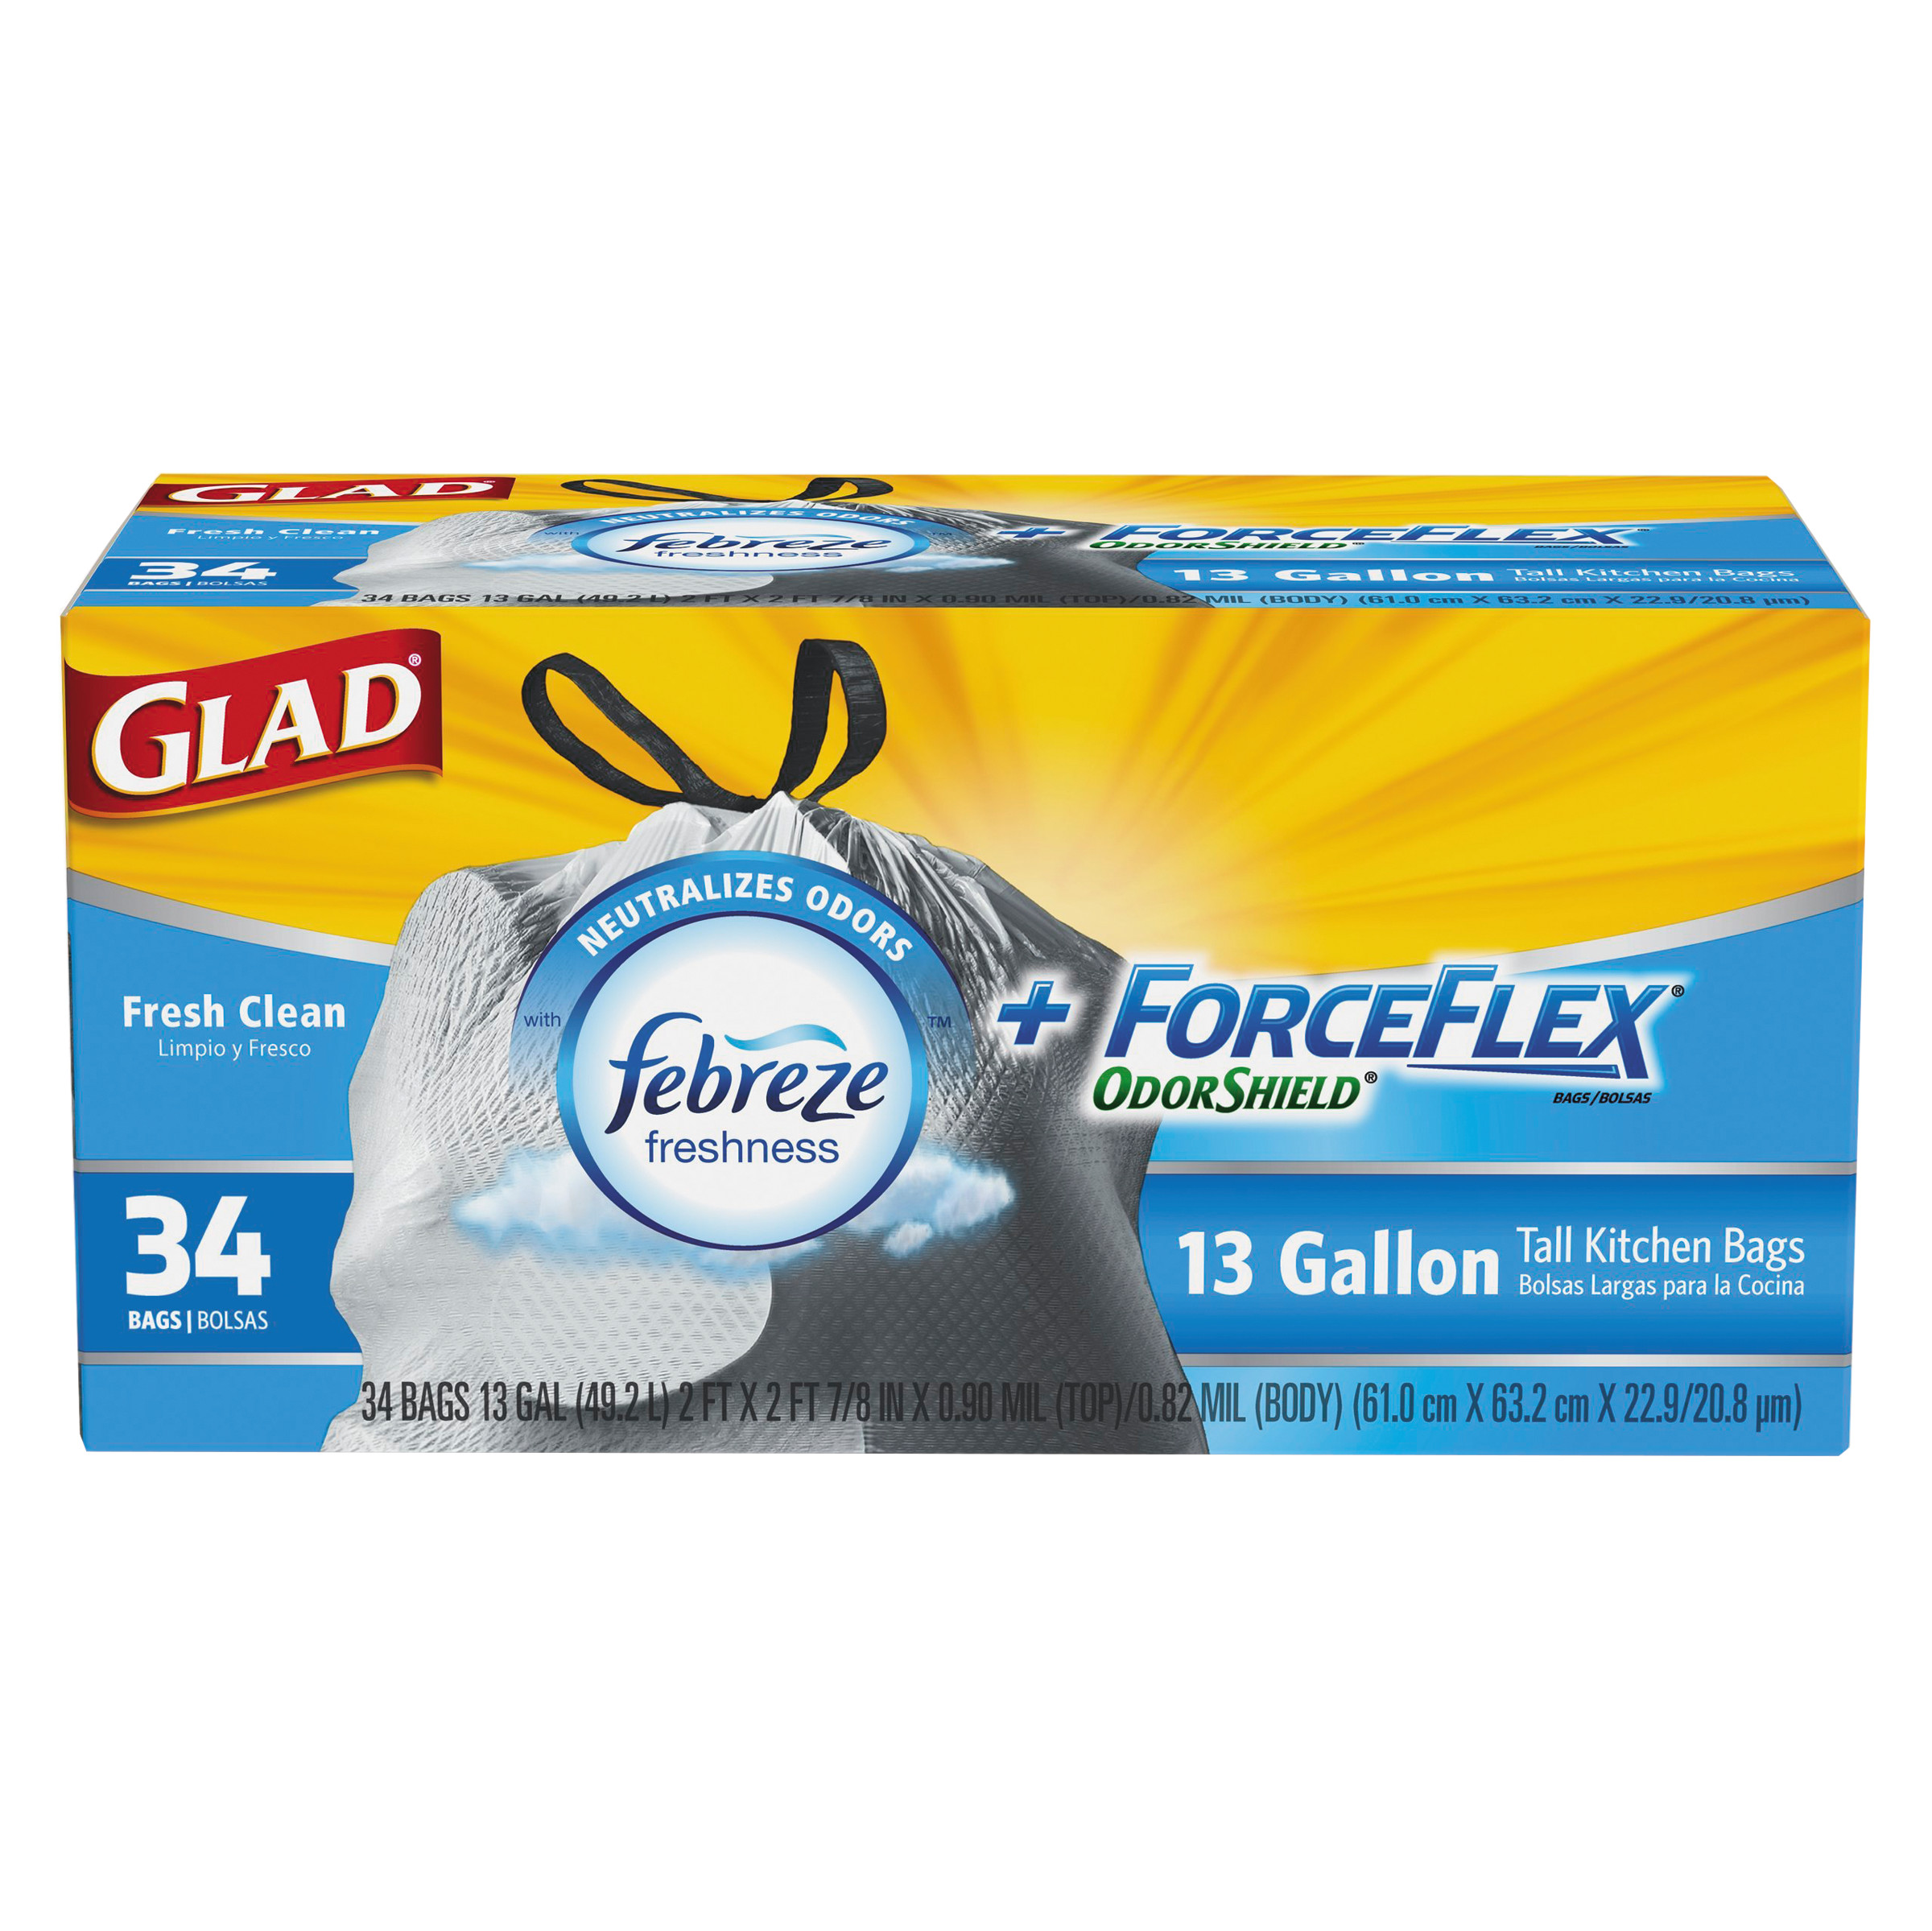 Glad ForceFlex OdorShield Drawstring Tall Kitchen Trash Bags, Fresh Clean, 13 Gallon, 34 Count